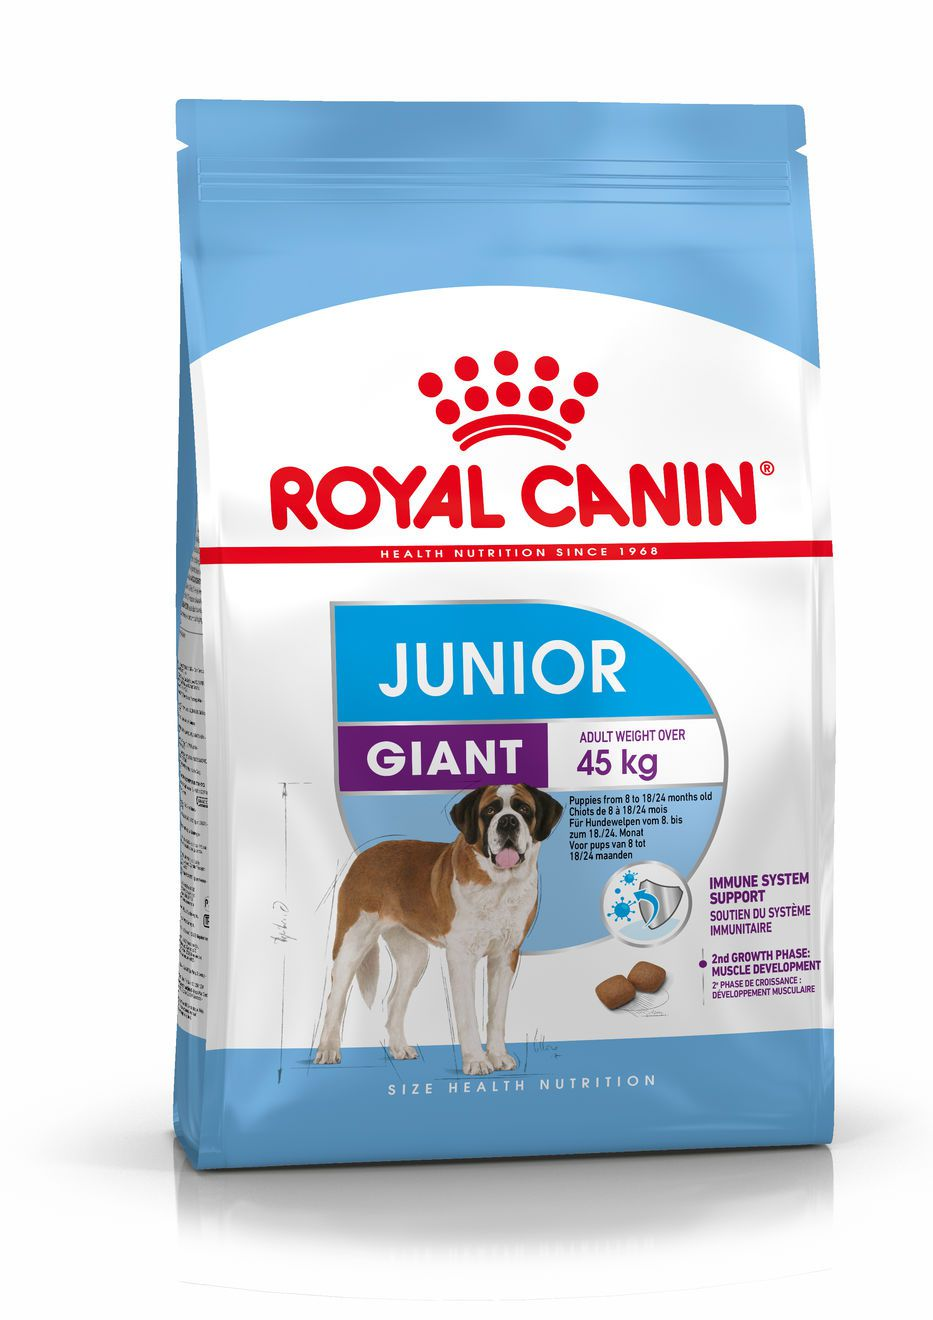 Royal Canin Chicken Based Giant Junior Food - 15 Kg